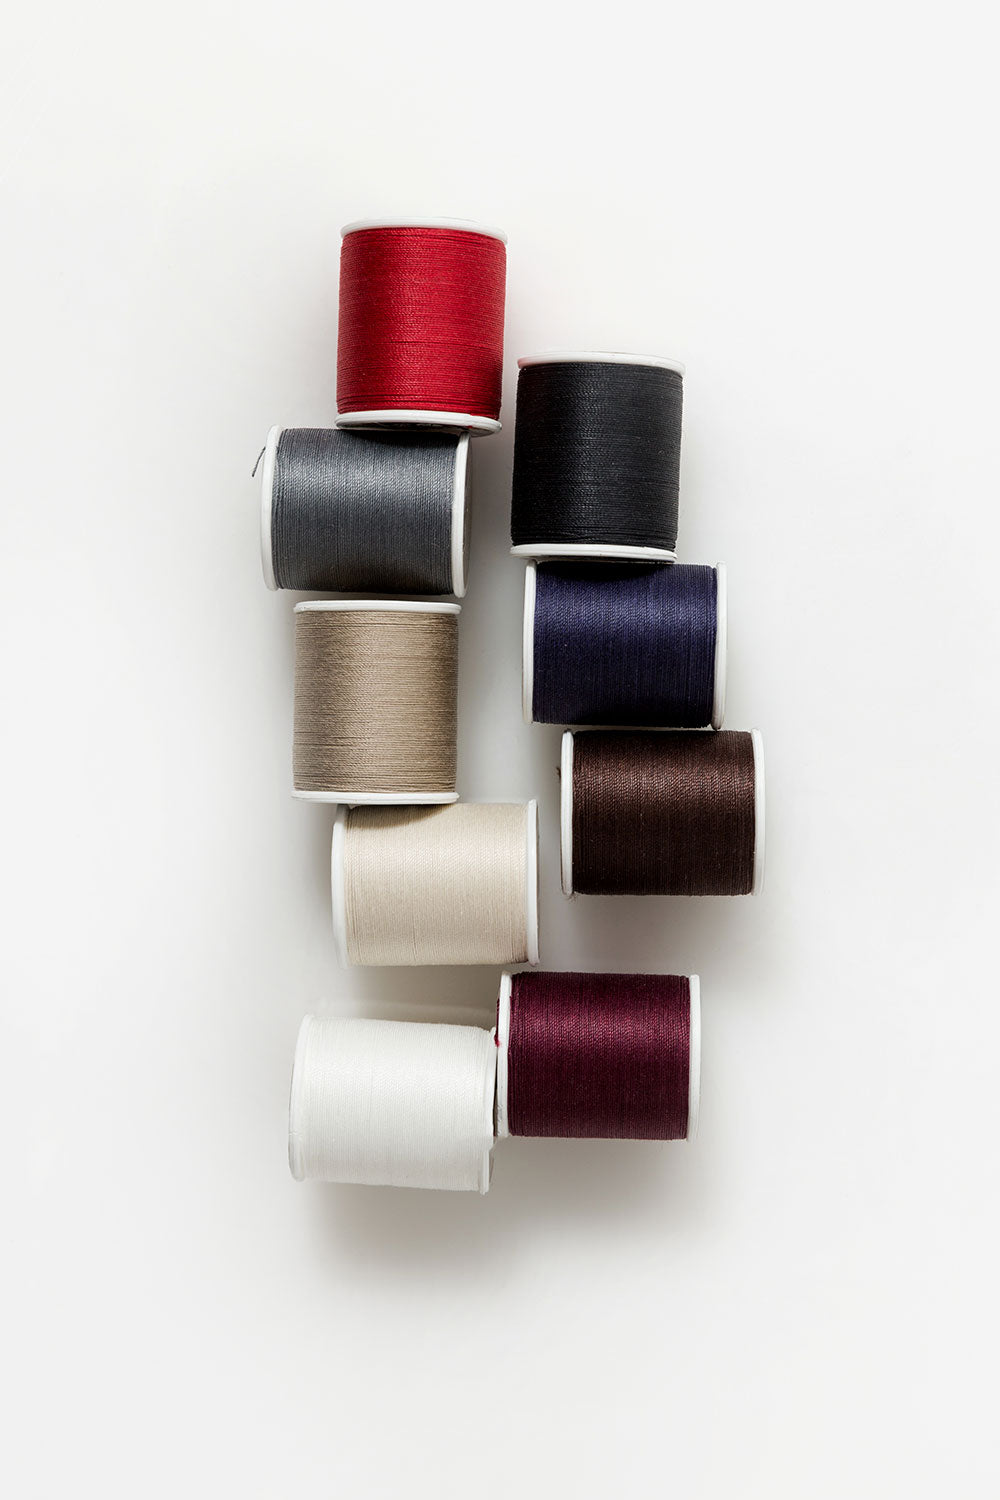 The School of Making Button Craft Thread Mixed Thread Colors for Hand-Sewing